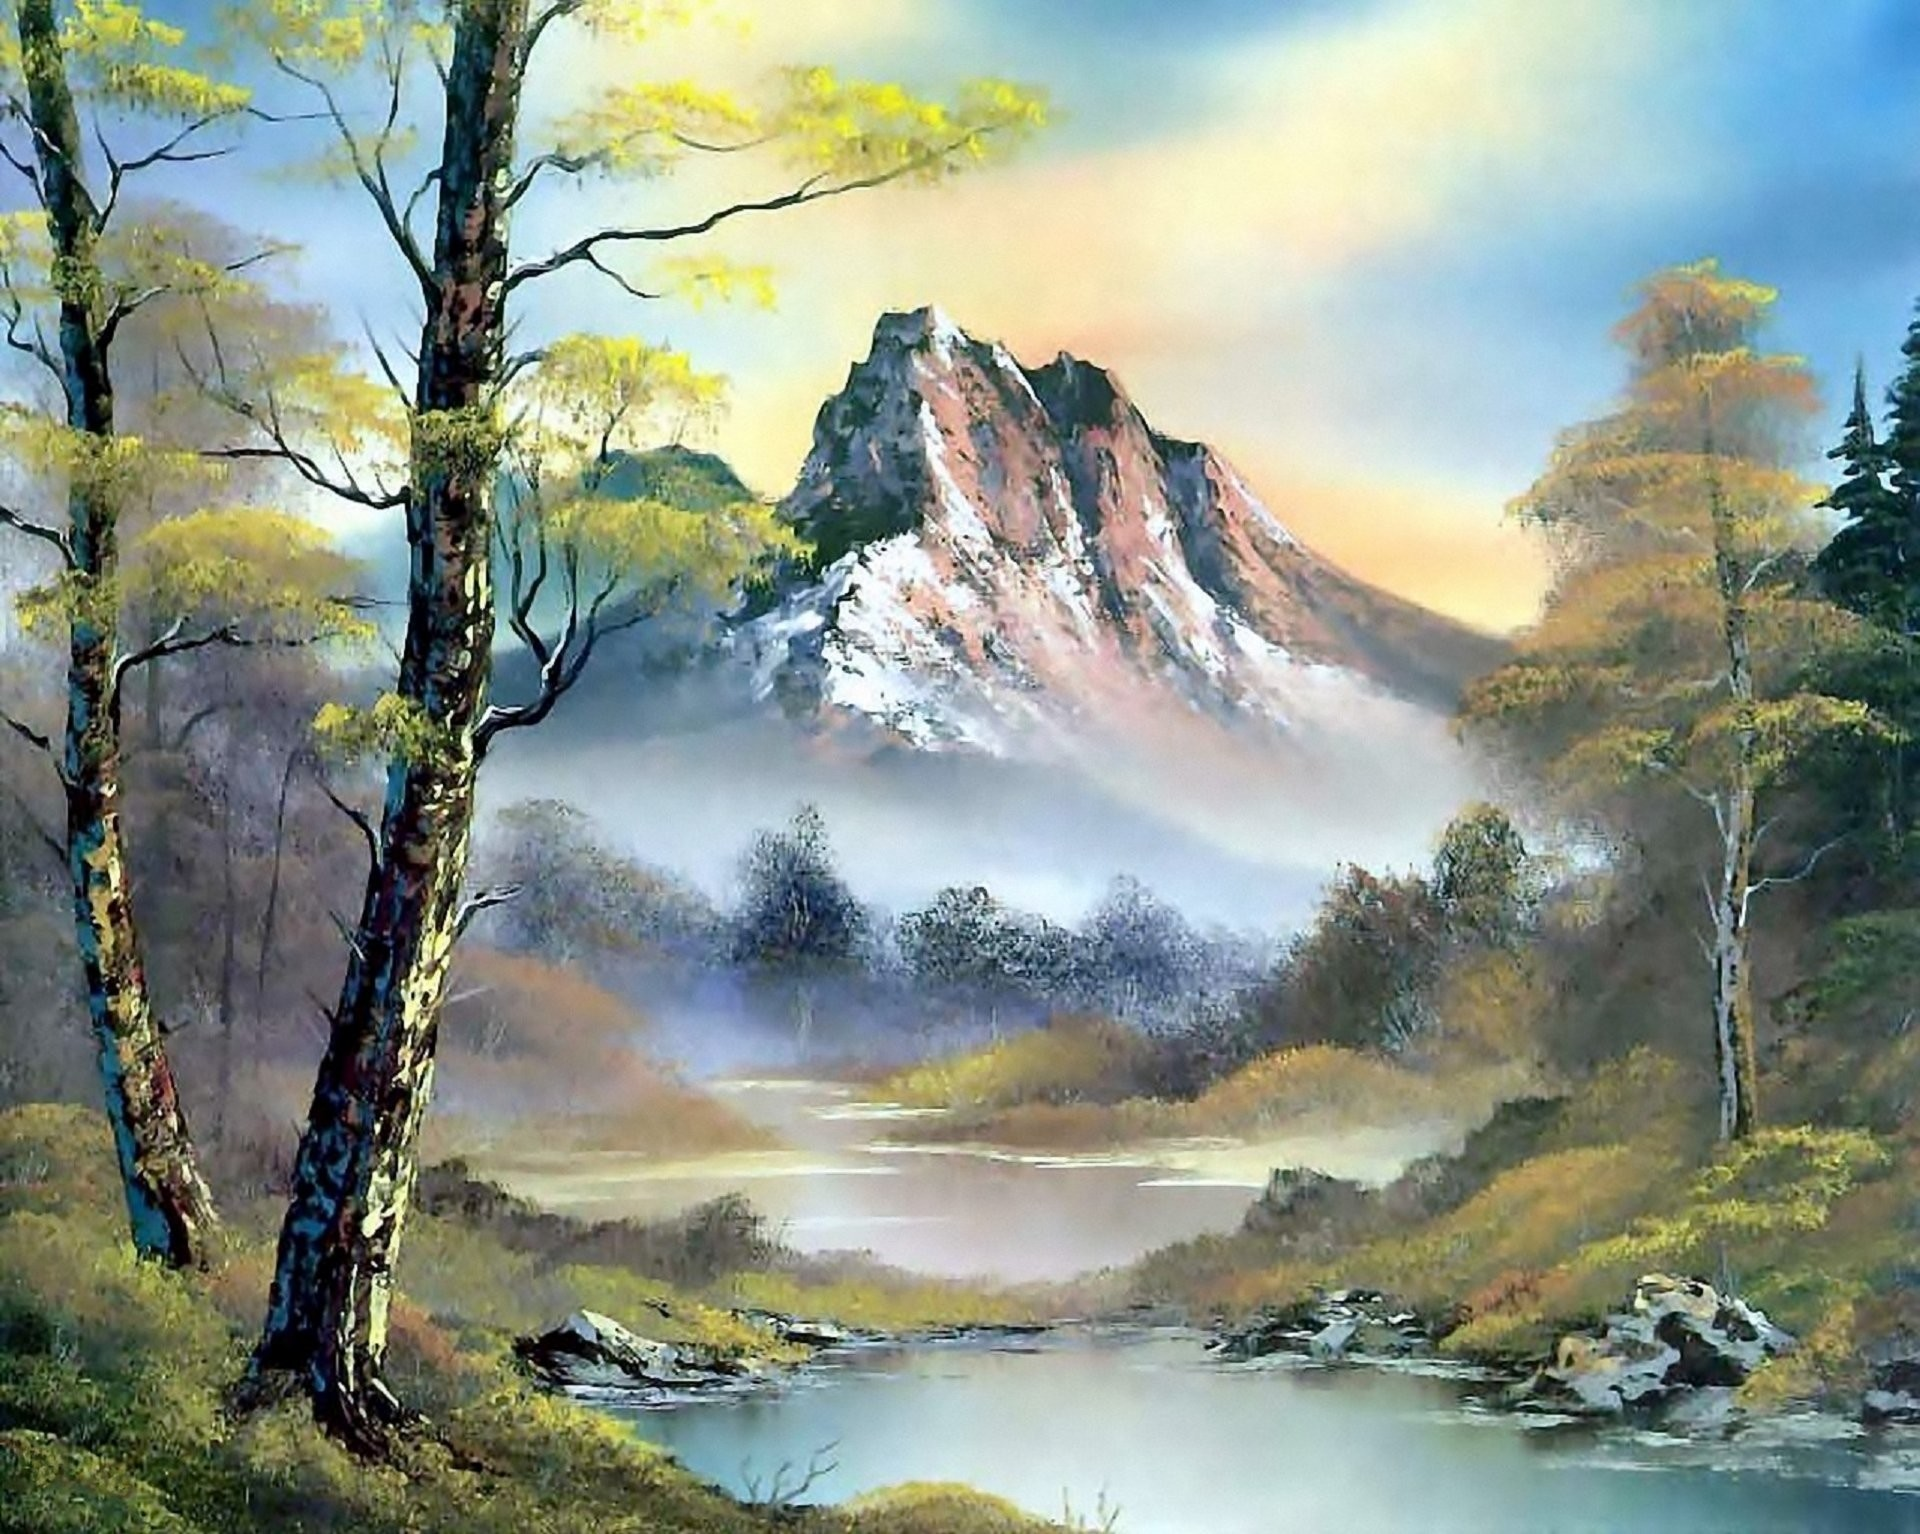 Res: 1920x1534, painting bob ross pattern landscape nature mountain river water forest tree  sky clouds